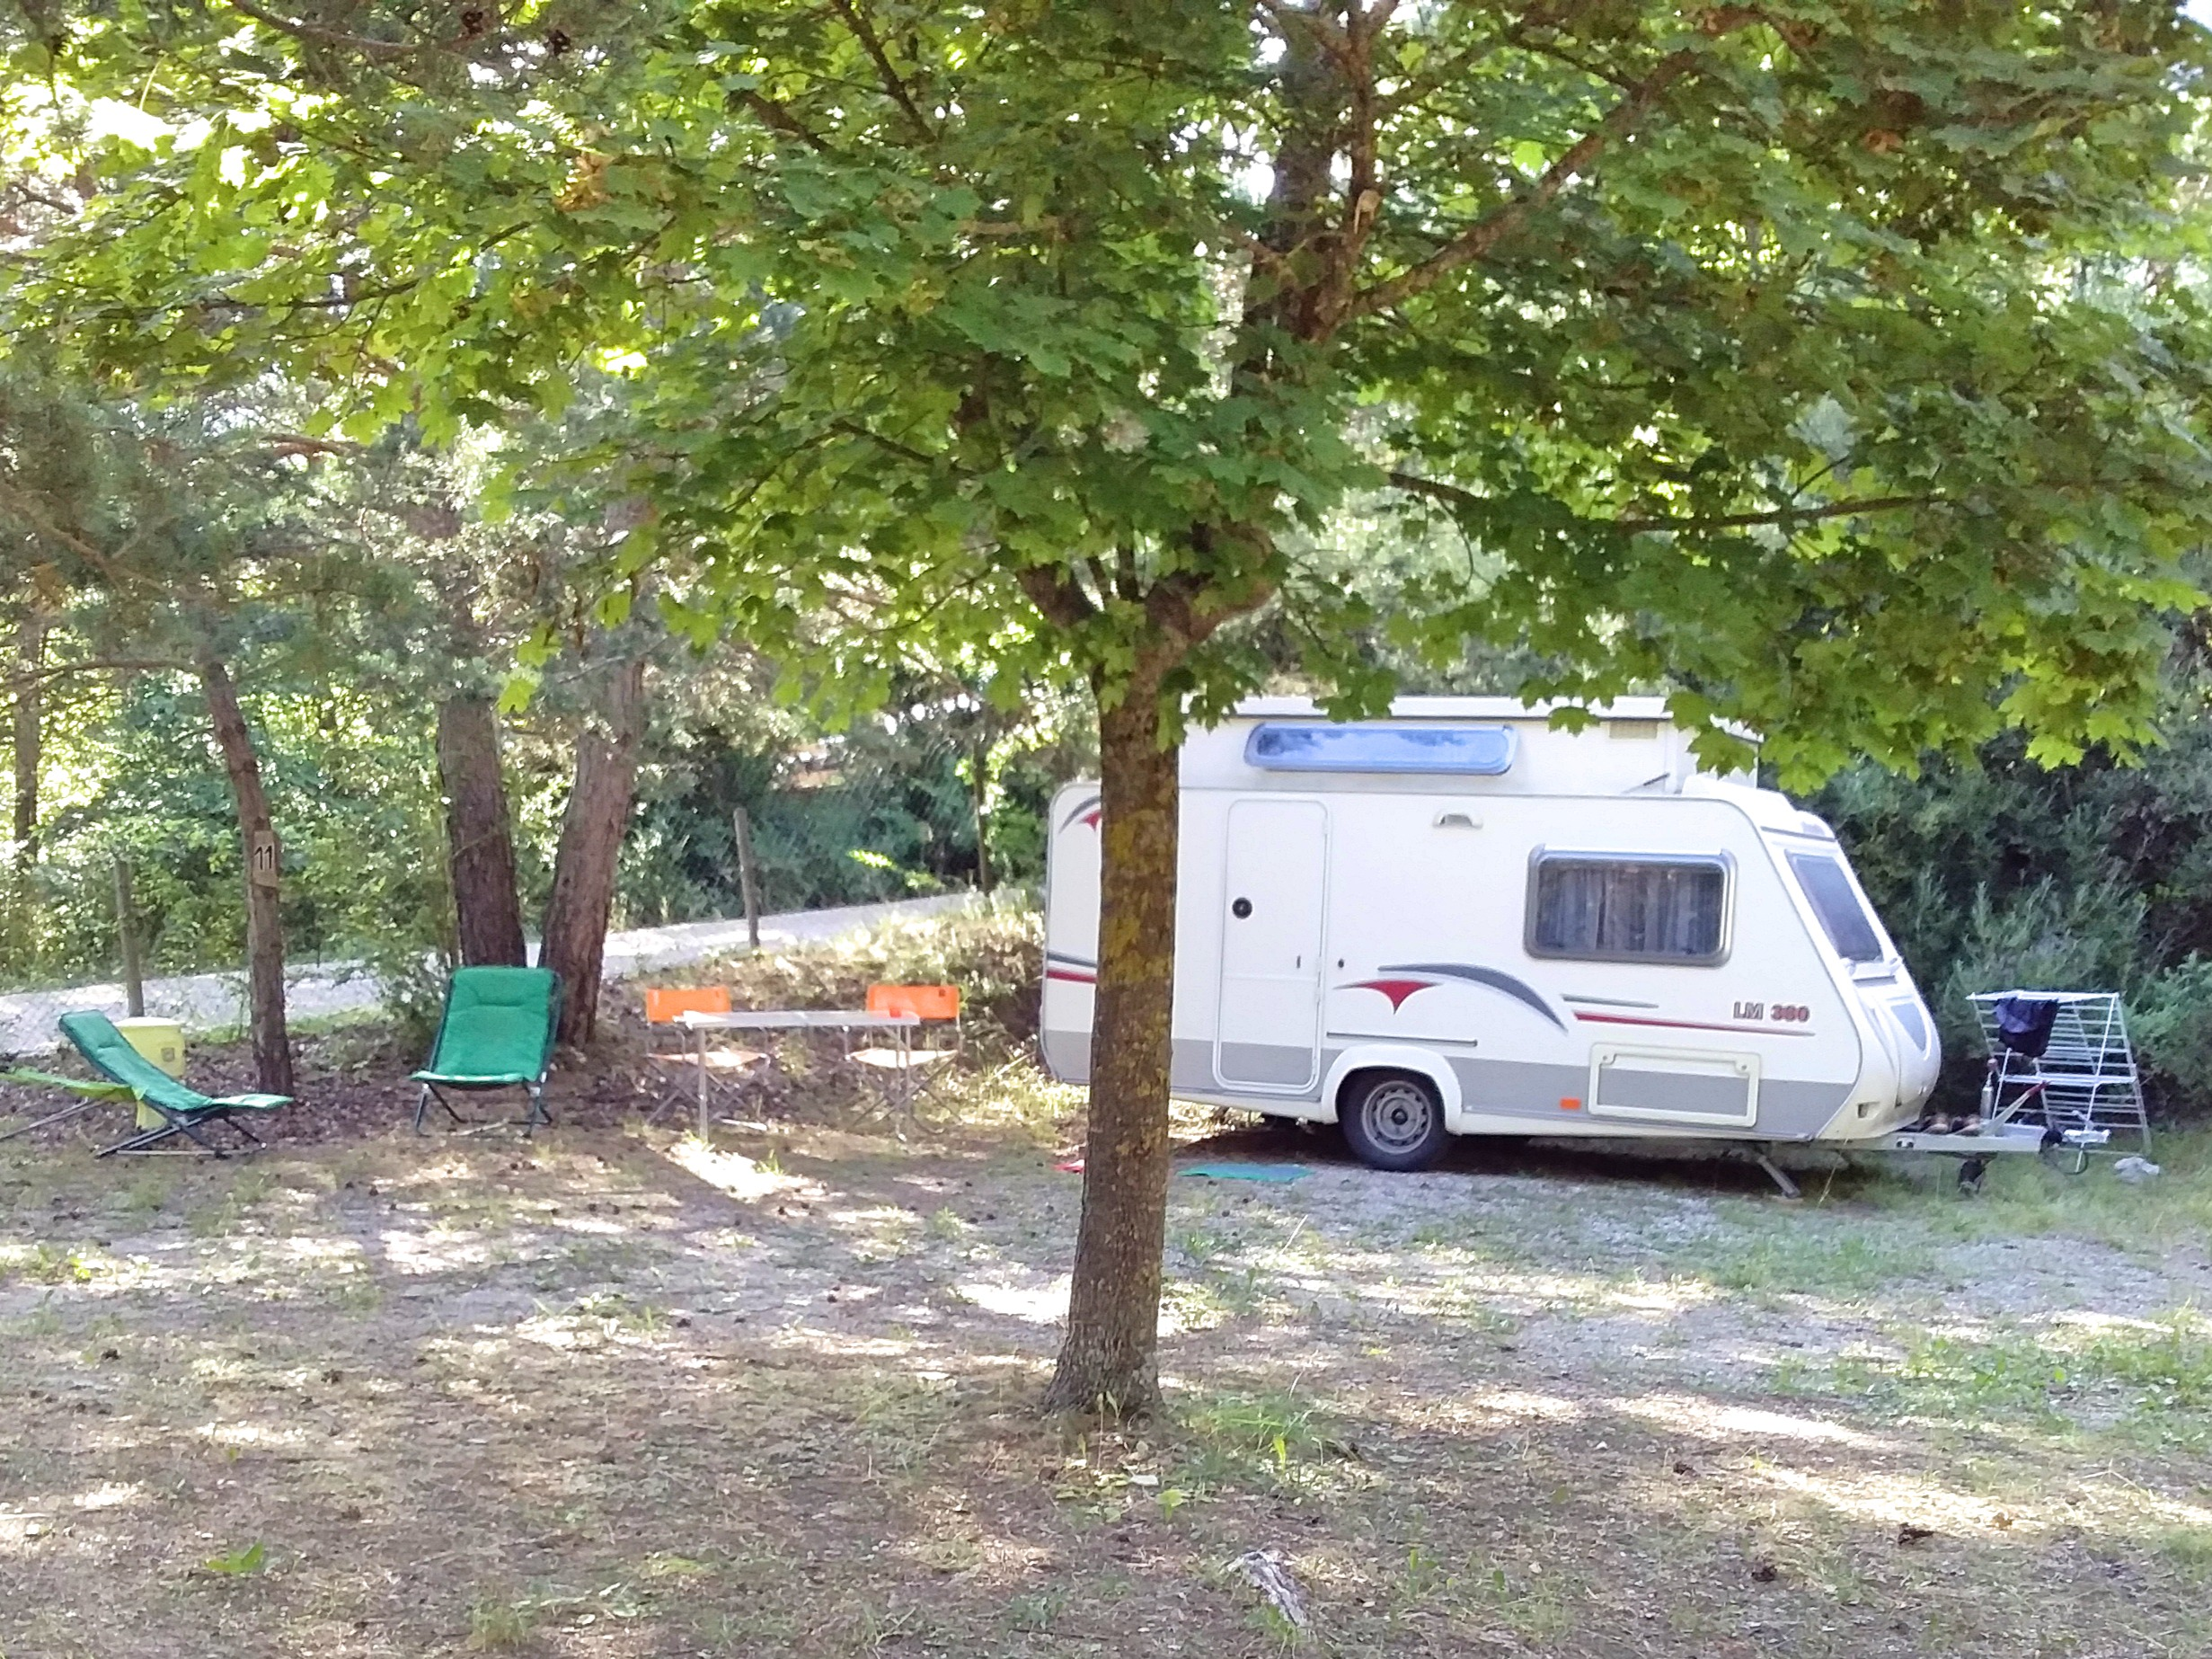 Camping - Les Thibauds - Miscon